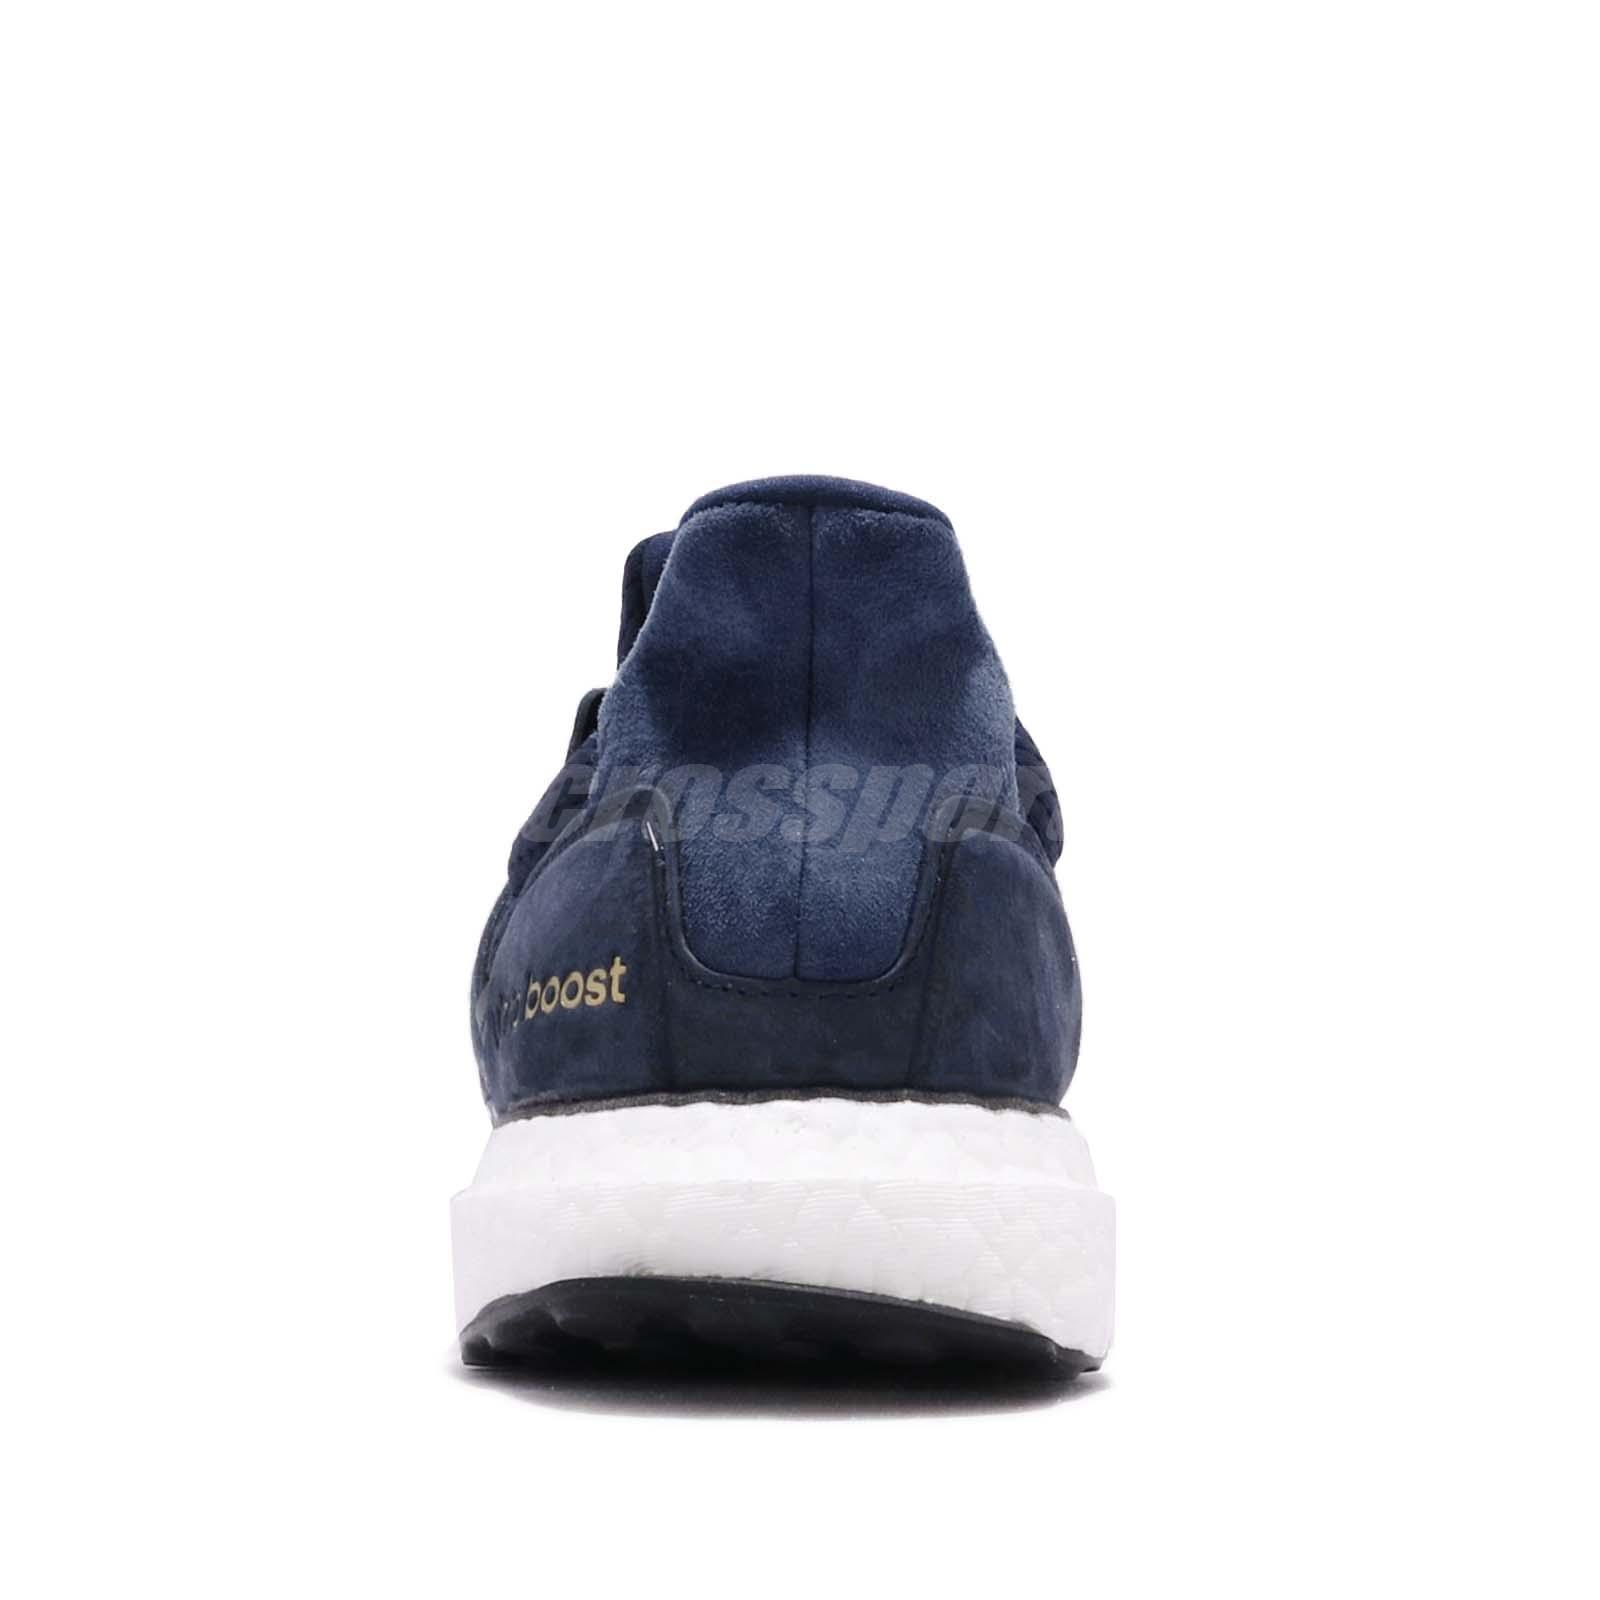 7aaafb25b93 adidas UltraBOOST S L Navy White Gold Men Running Casual Shoes ...